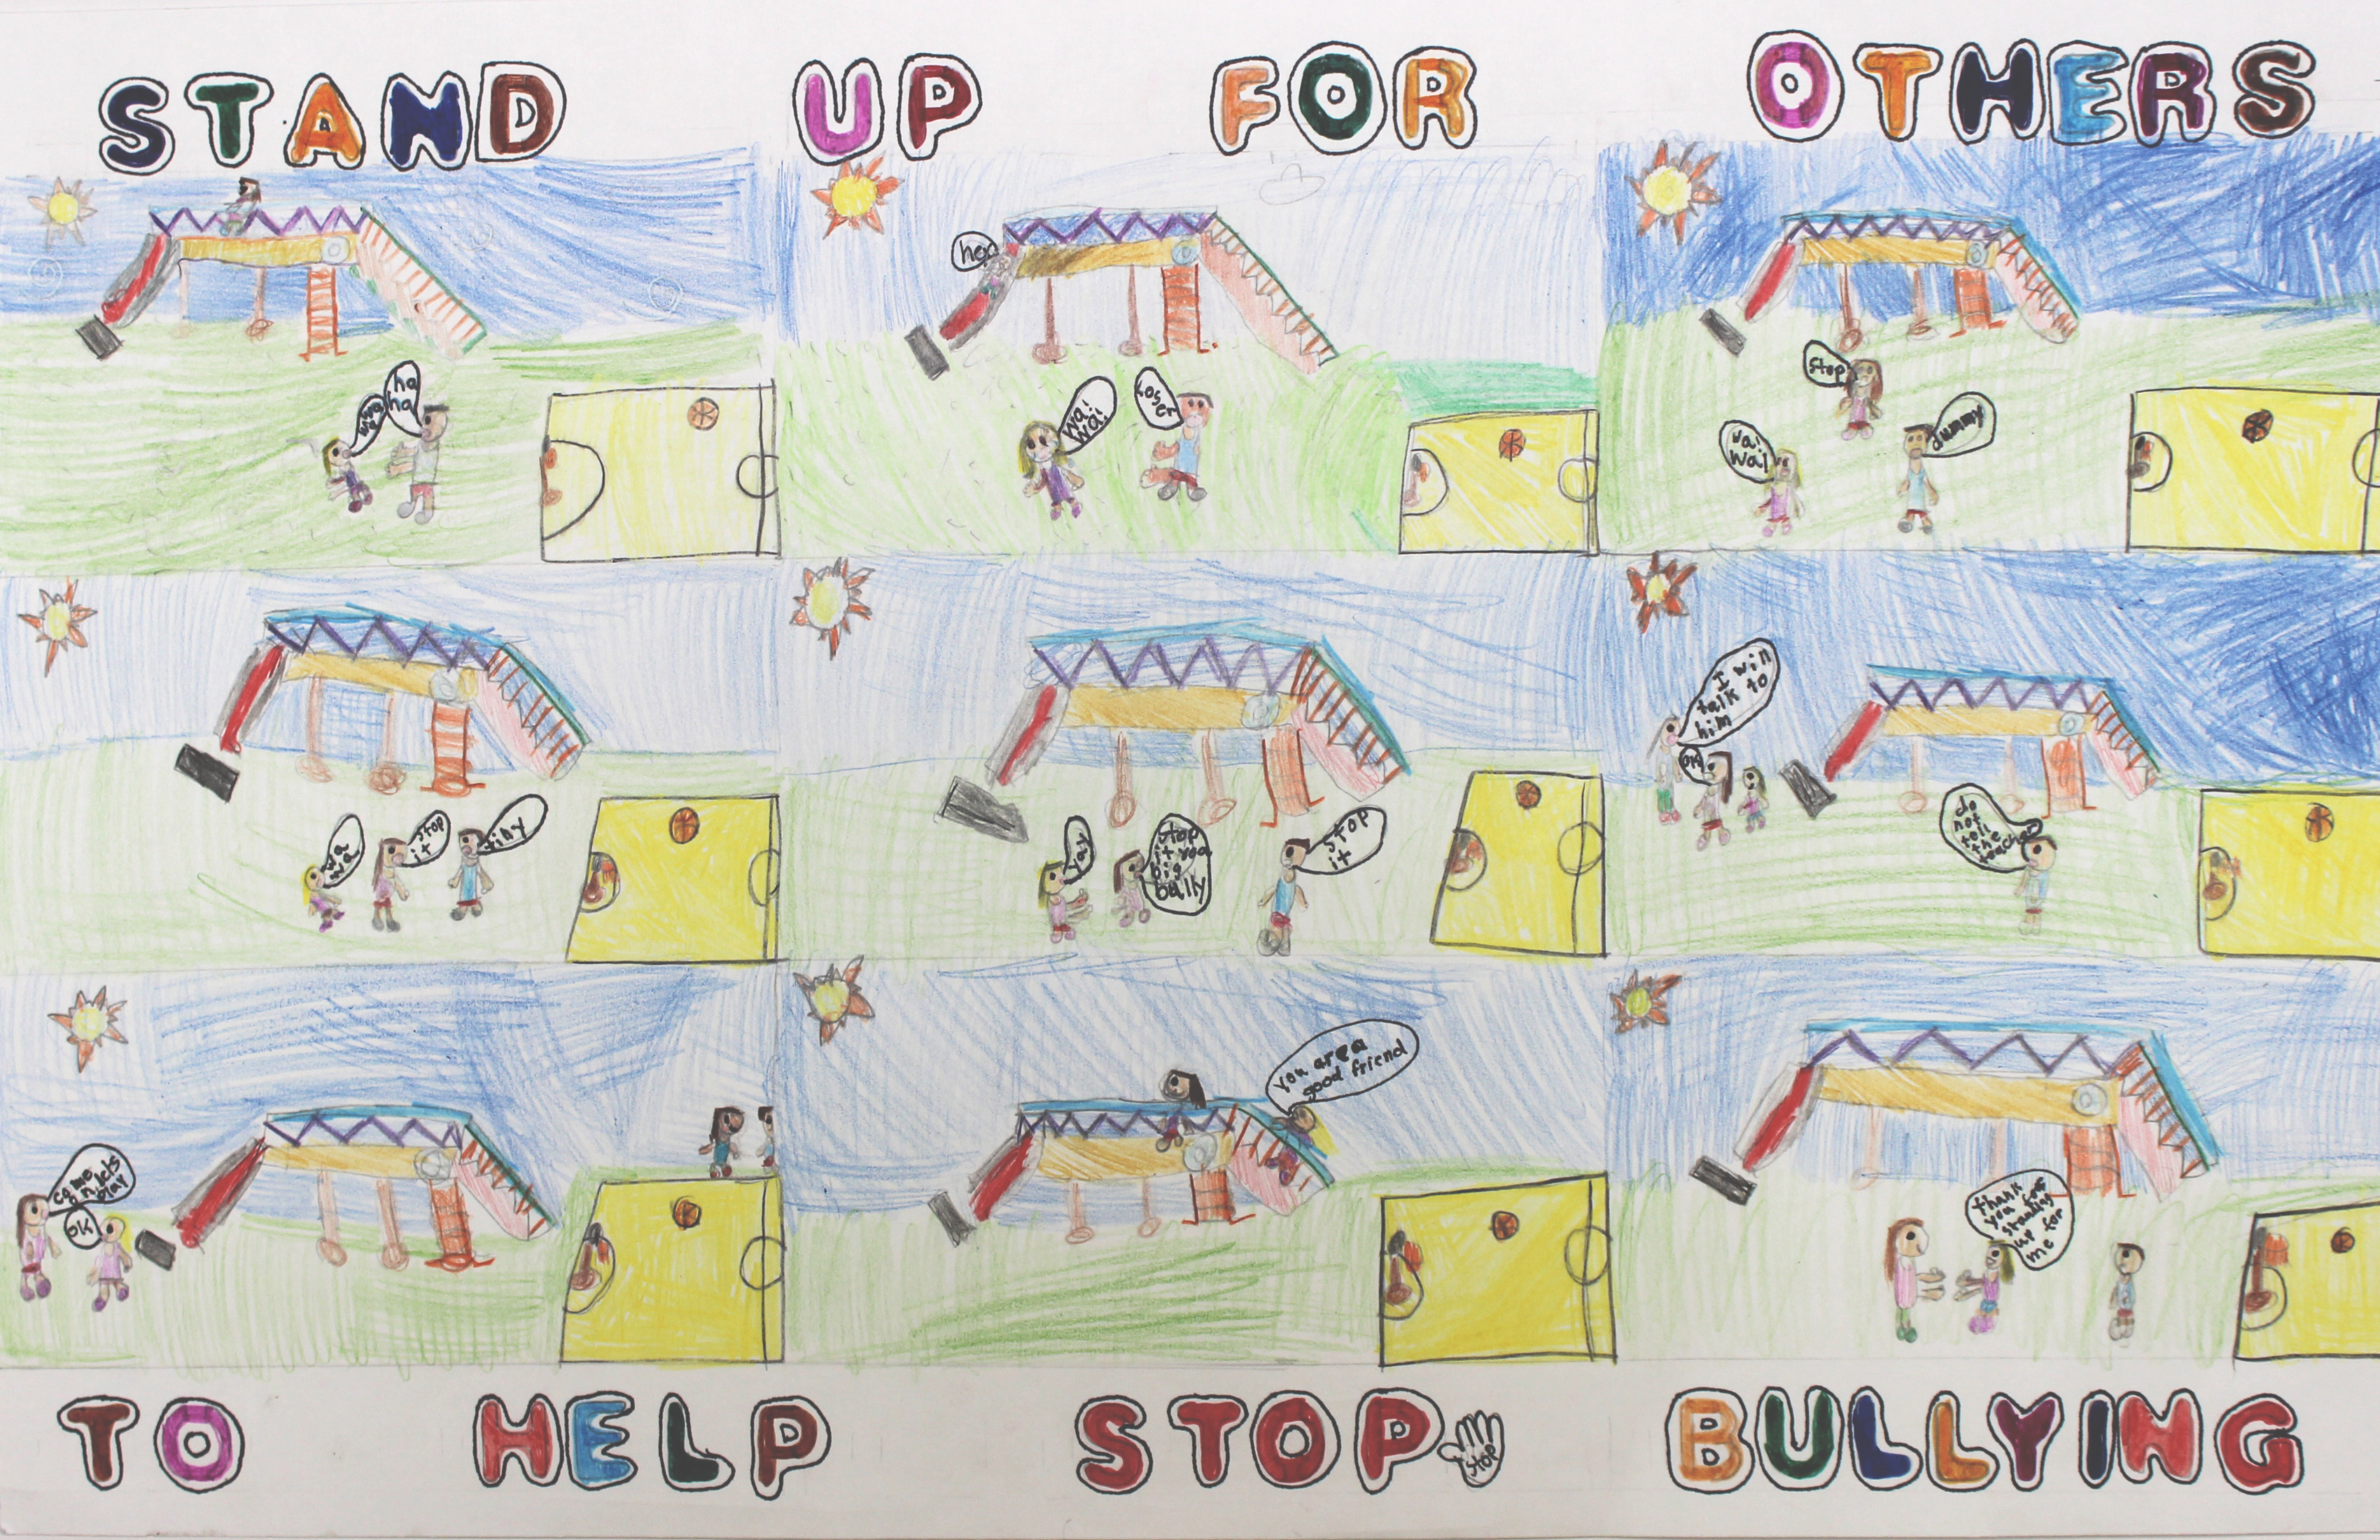 Poster design contest -  Help Stop Bullying